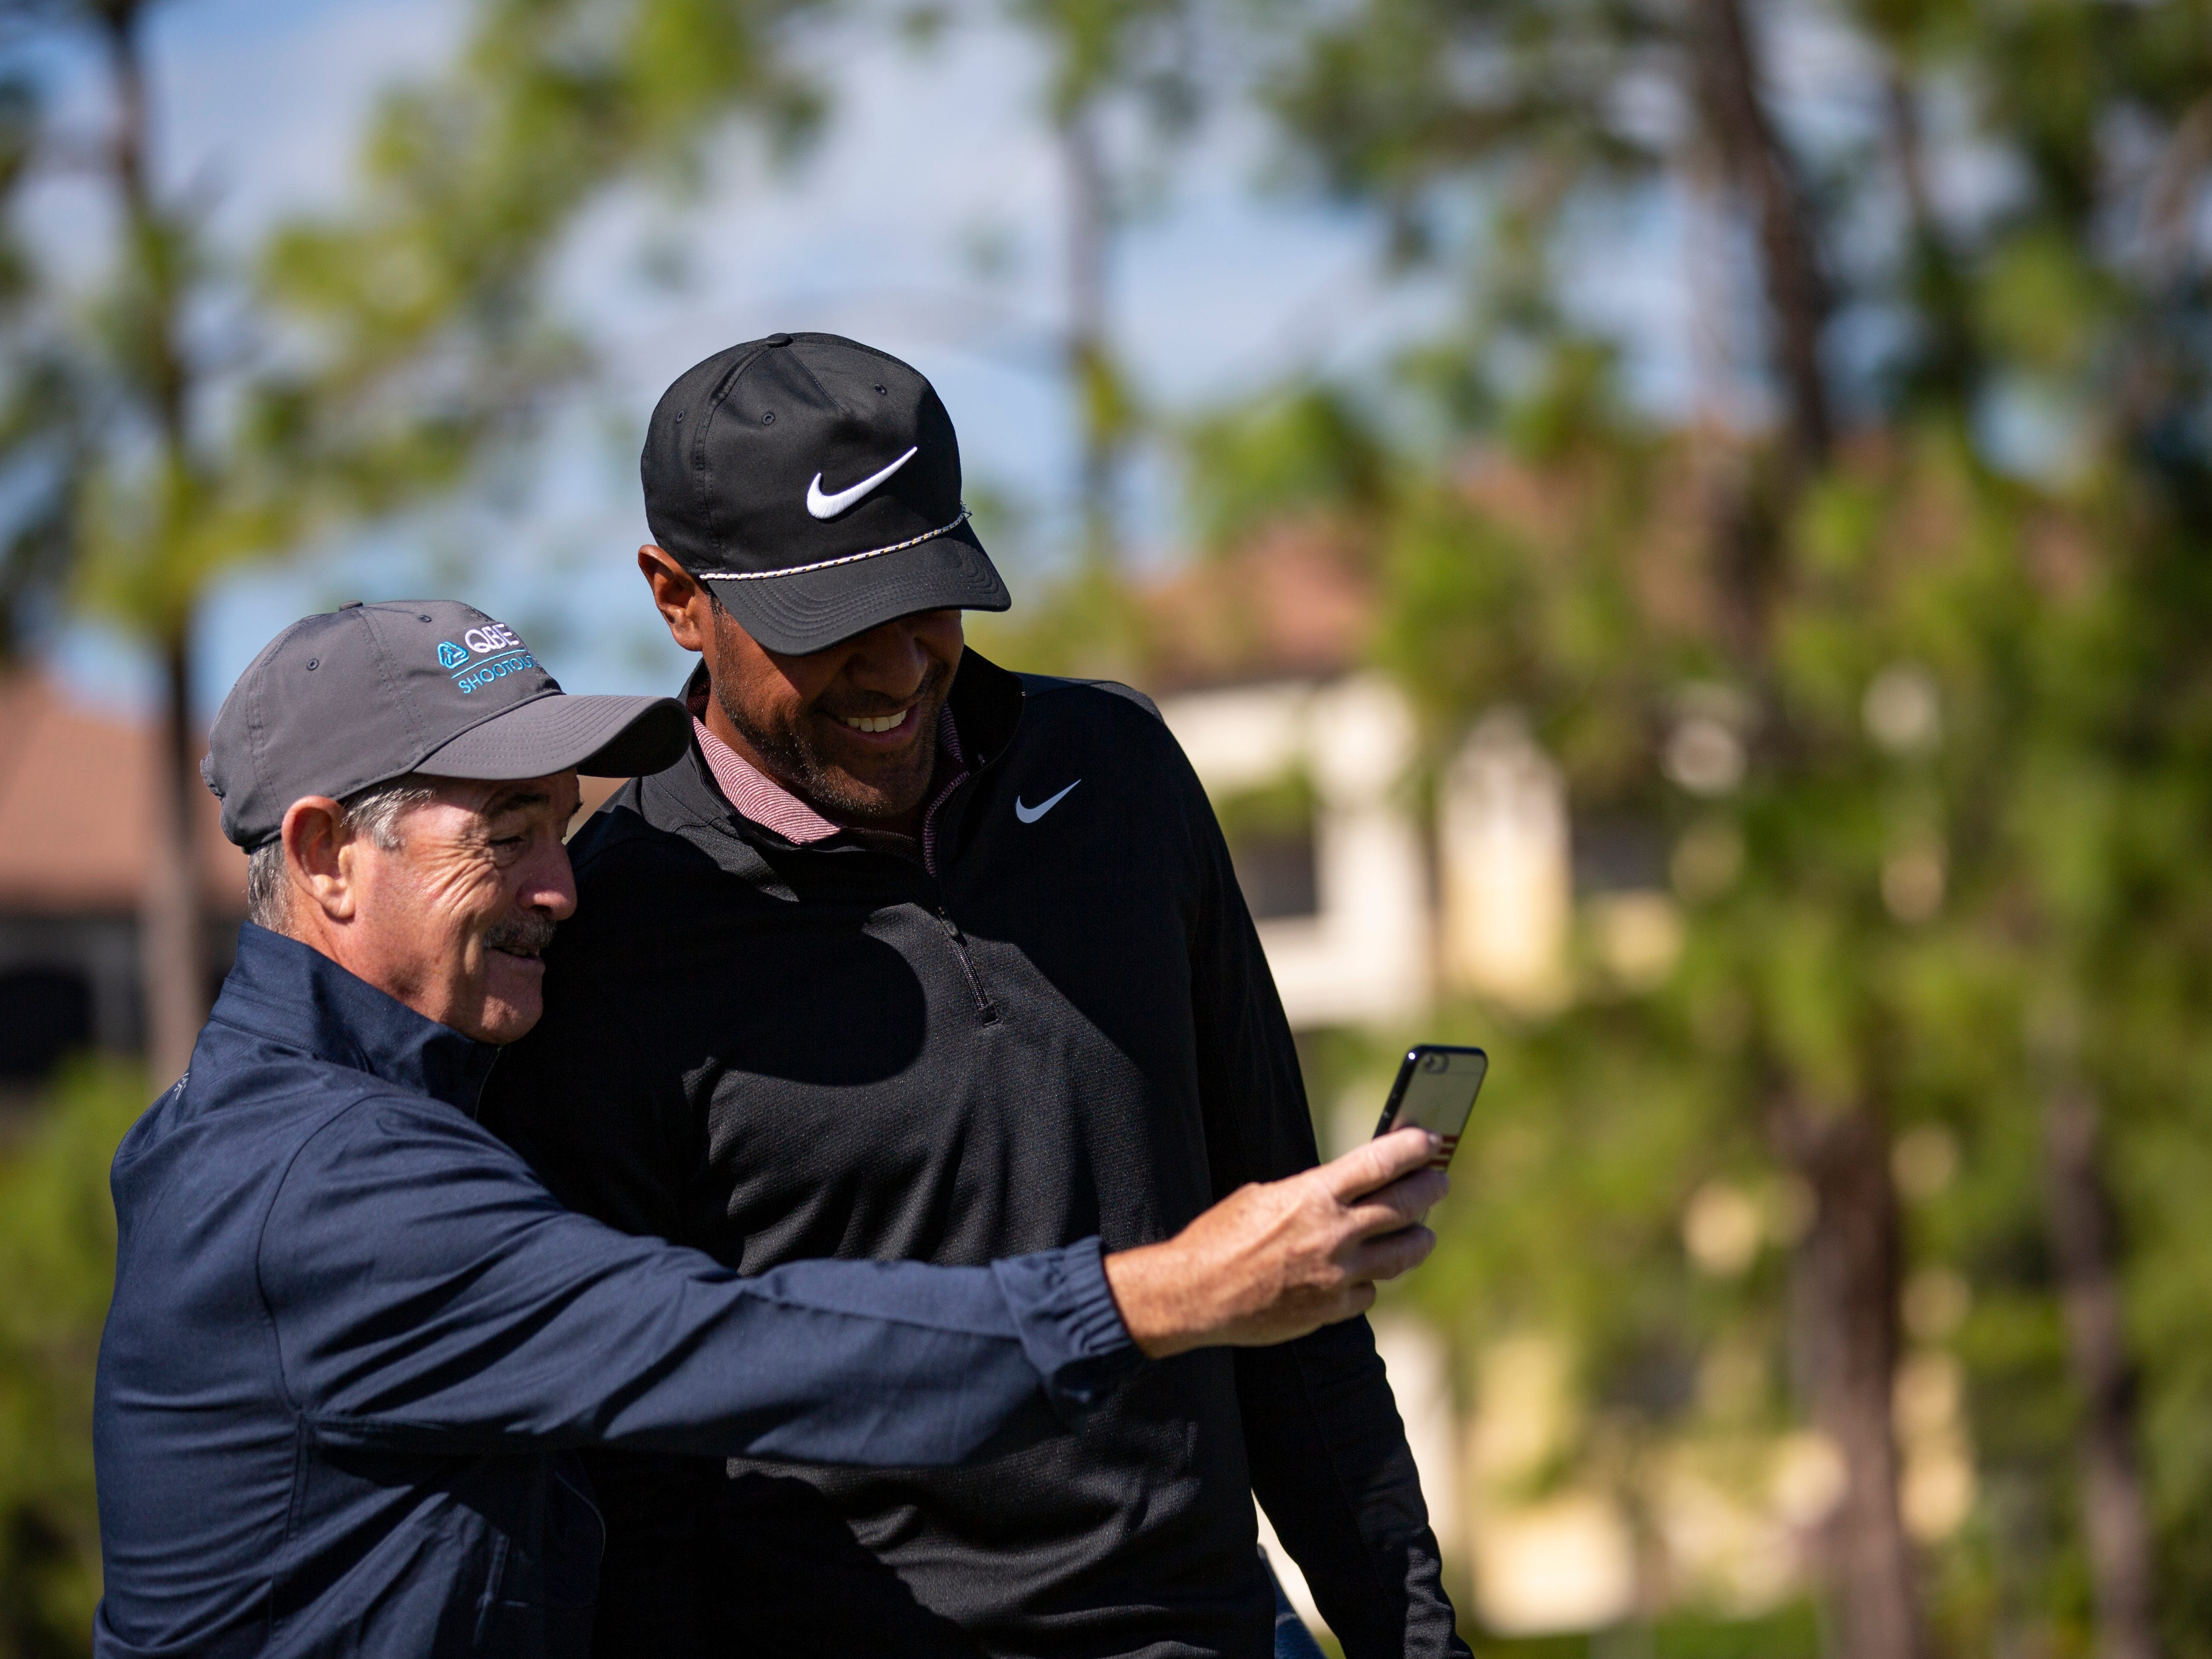 Before heading out to the next hole for the first Pro-Am round, pro golfer Tony Finau, right, stops to take a selfie with volunteer Jimmy Kelly on Wednesday, Dec. 5, 2018, at the 30th annual QBE Shootout at Tiburón Golf Club in North Naples.